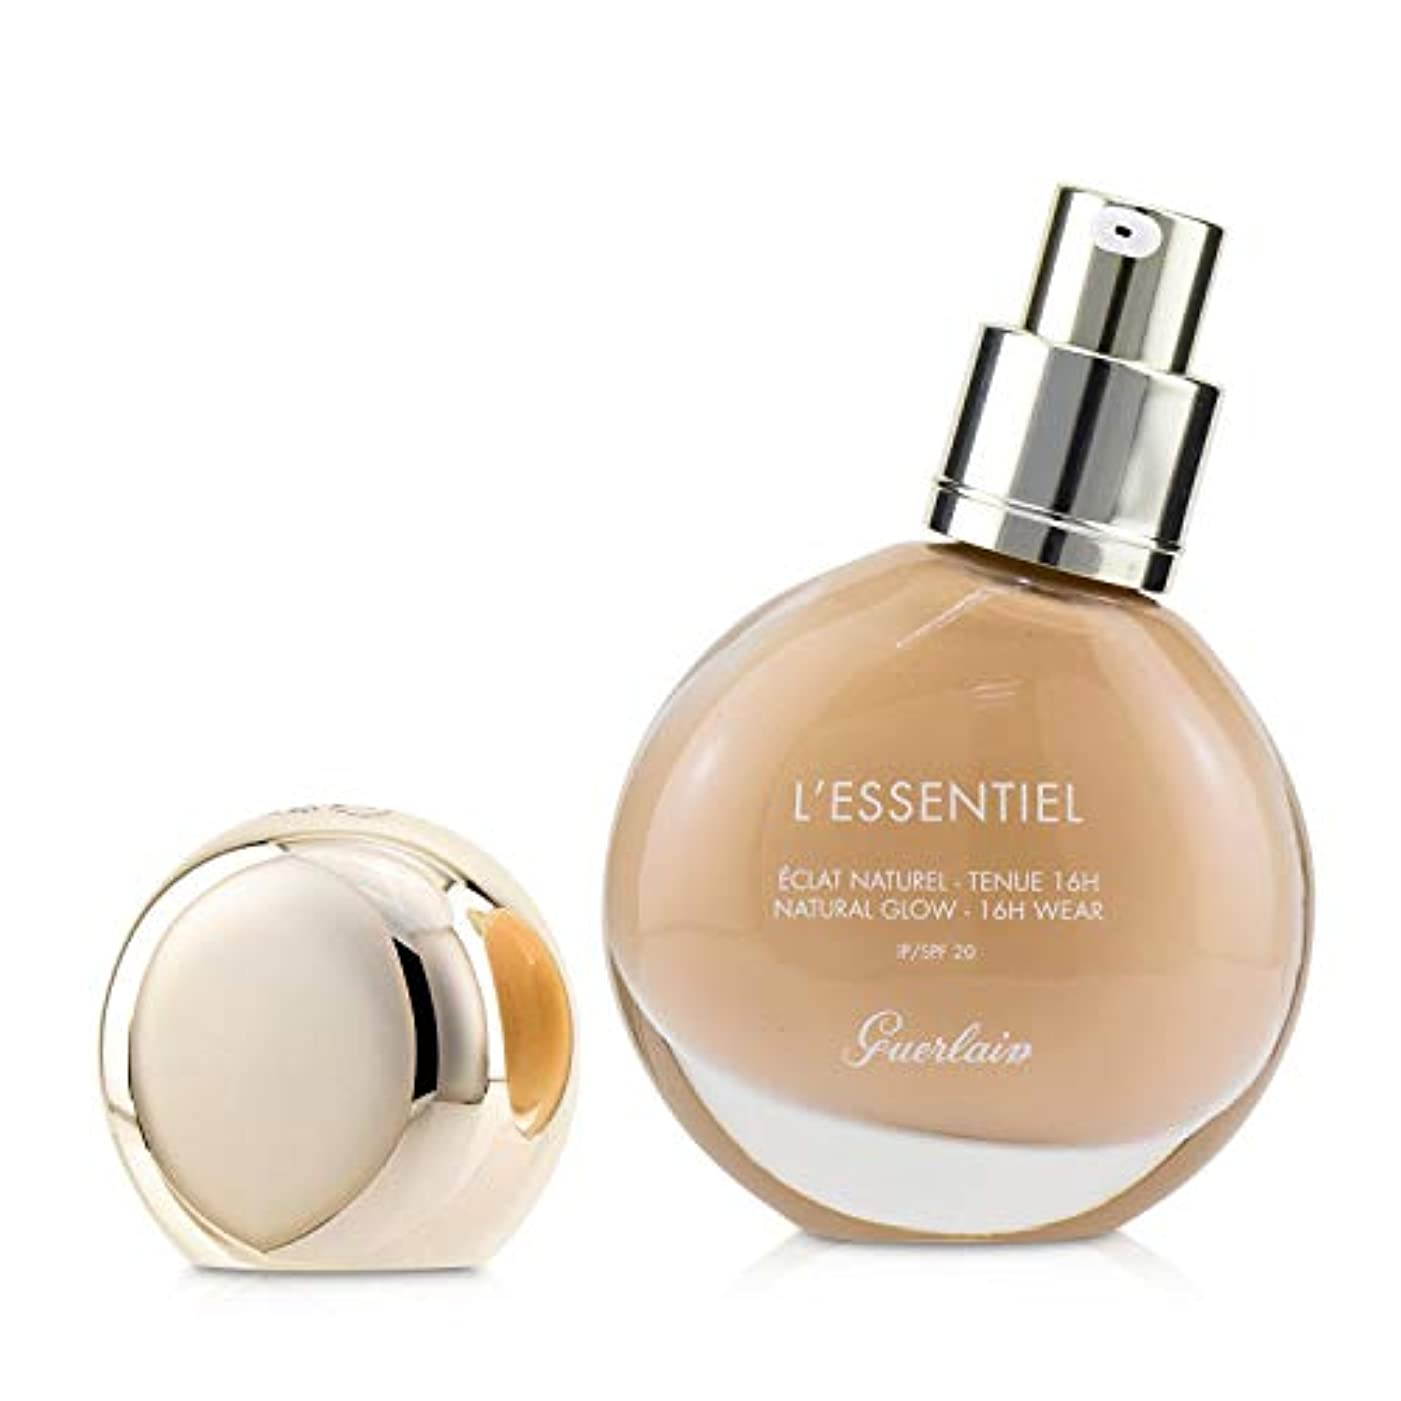 庭園逆さまに証明書ゲラン L'Essentiel Natural Glow Foundation 16H Wear SPF 20 - # 035C Beige Cool 30ml/1oz並行輸入品